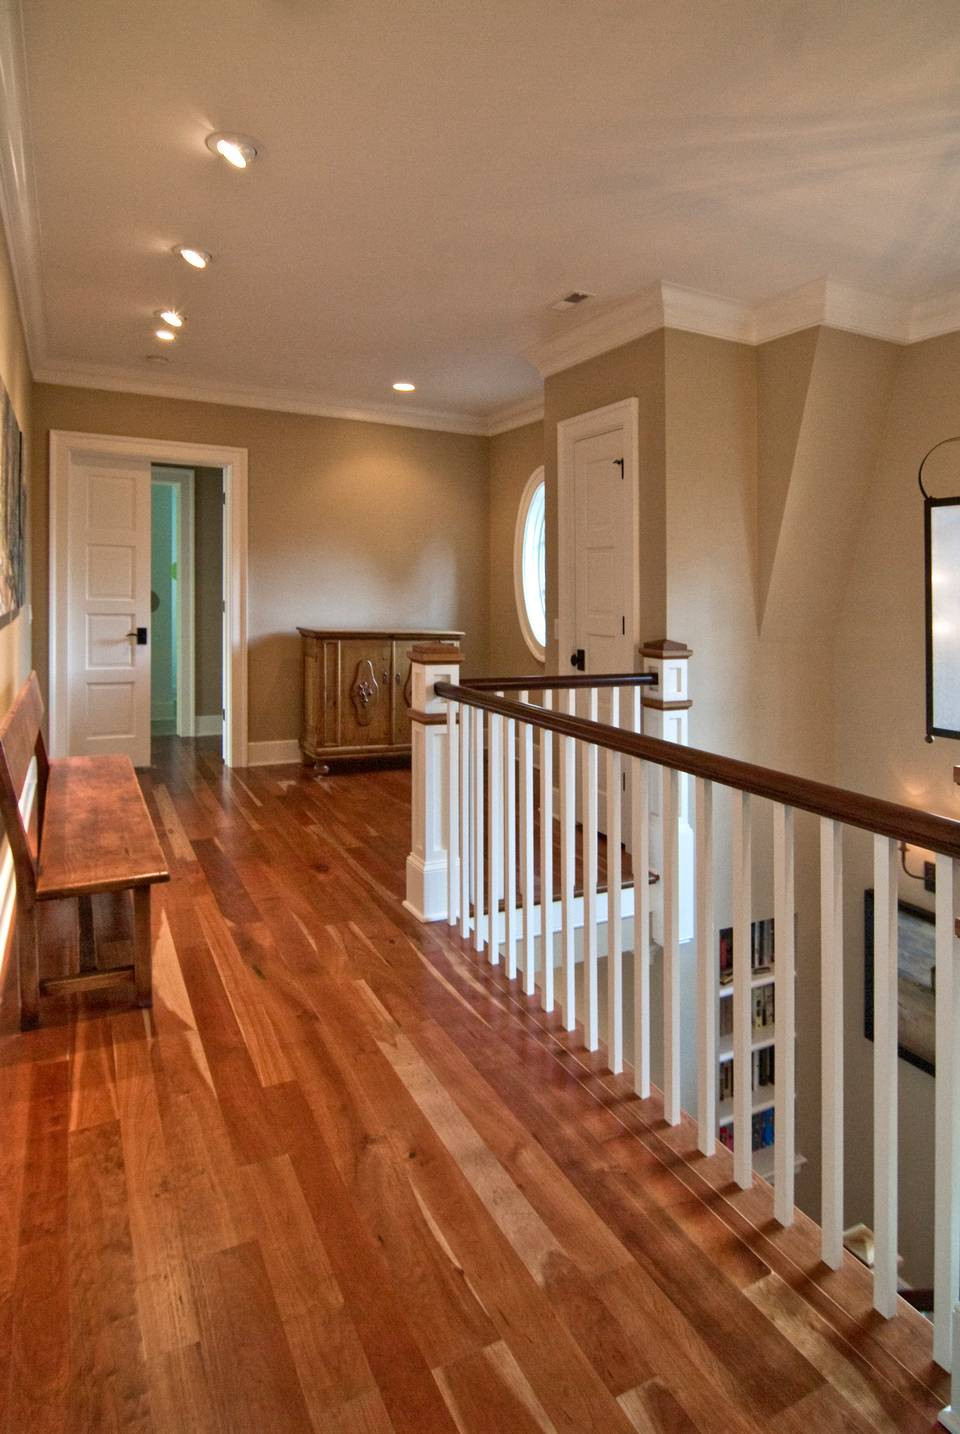 carolina hardwood flooring charlotte nc of lakefront love charlotte observer with 10sqlr so 138